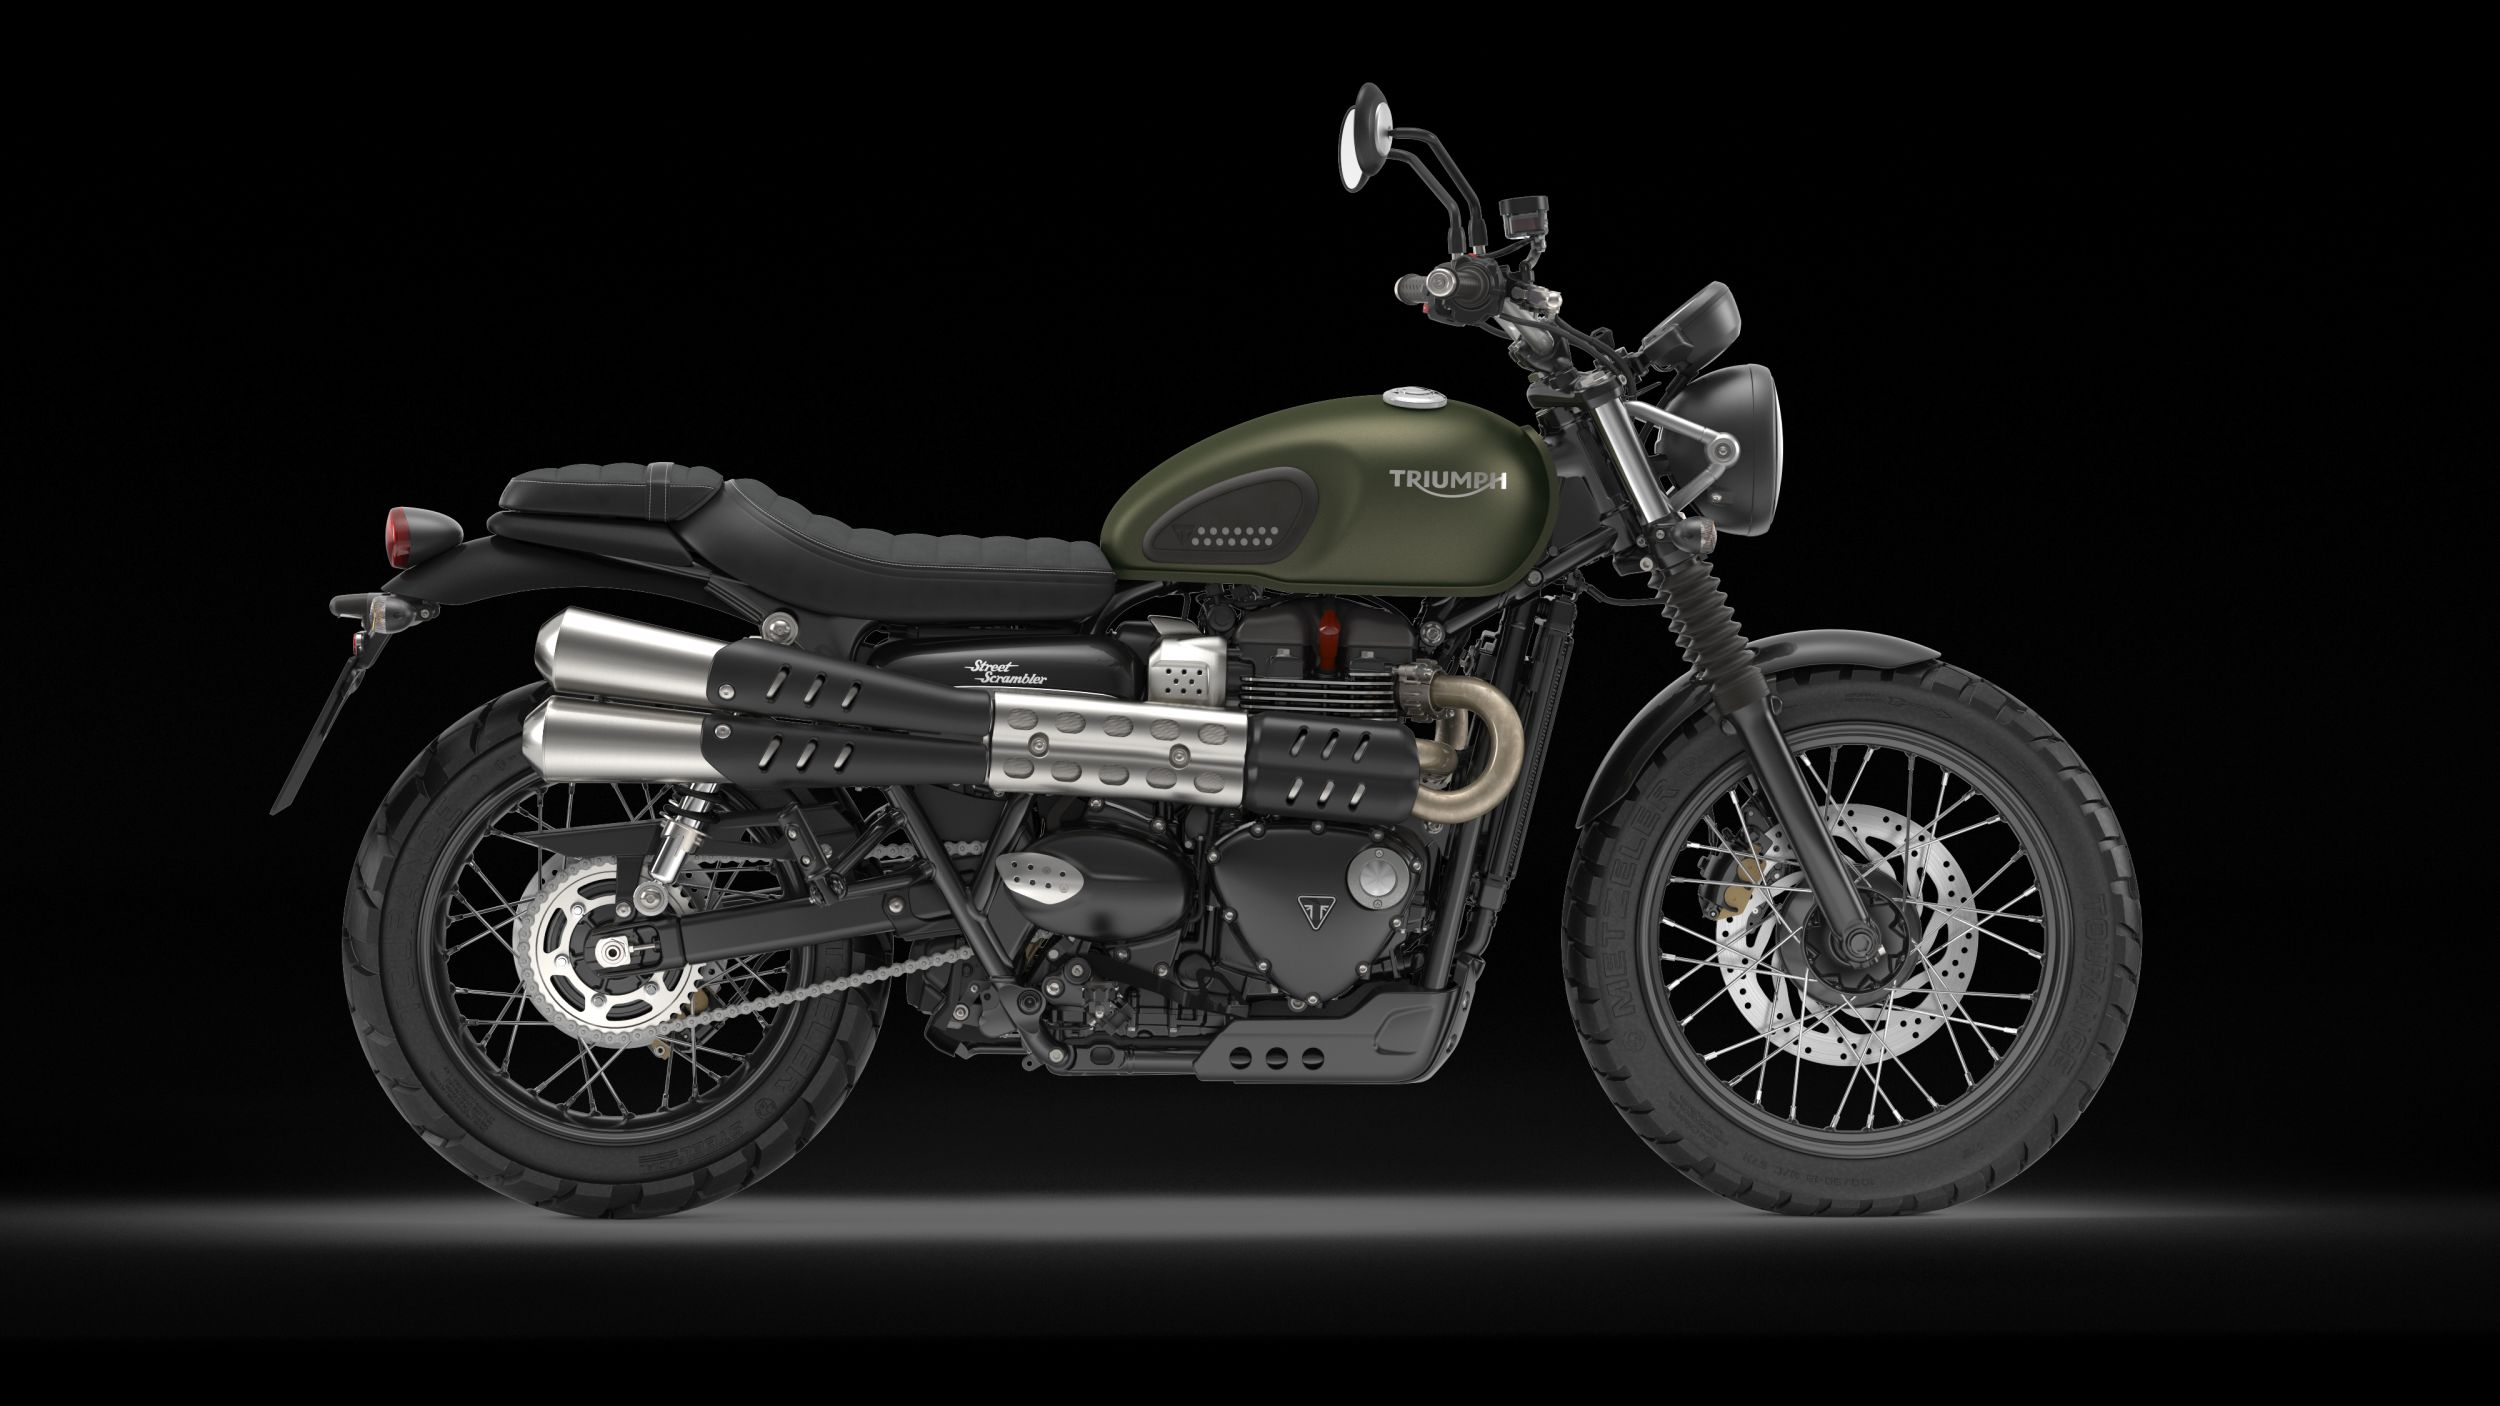 triumph street scrambler all technical data of the model street scrambler from triumph. Black Bedroom Furniture Sets. Home Design Ideas